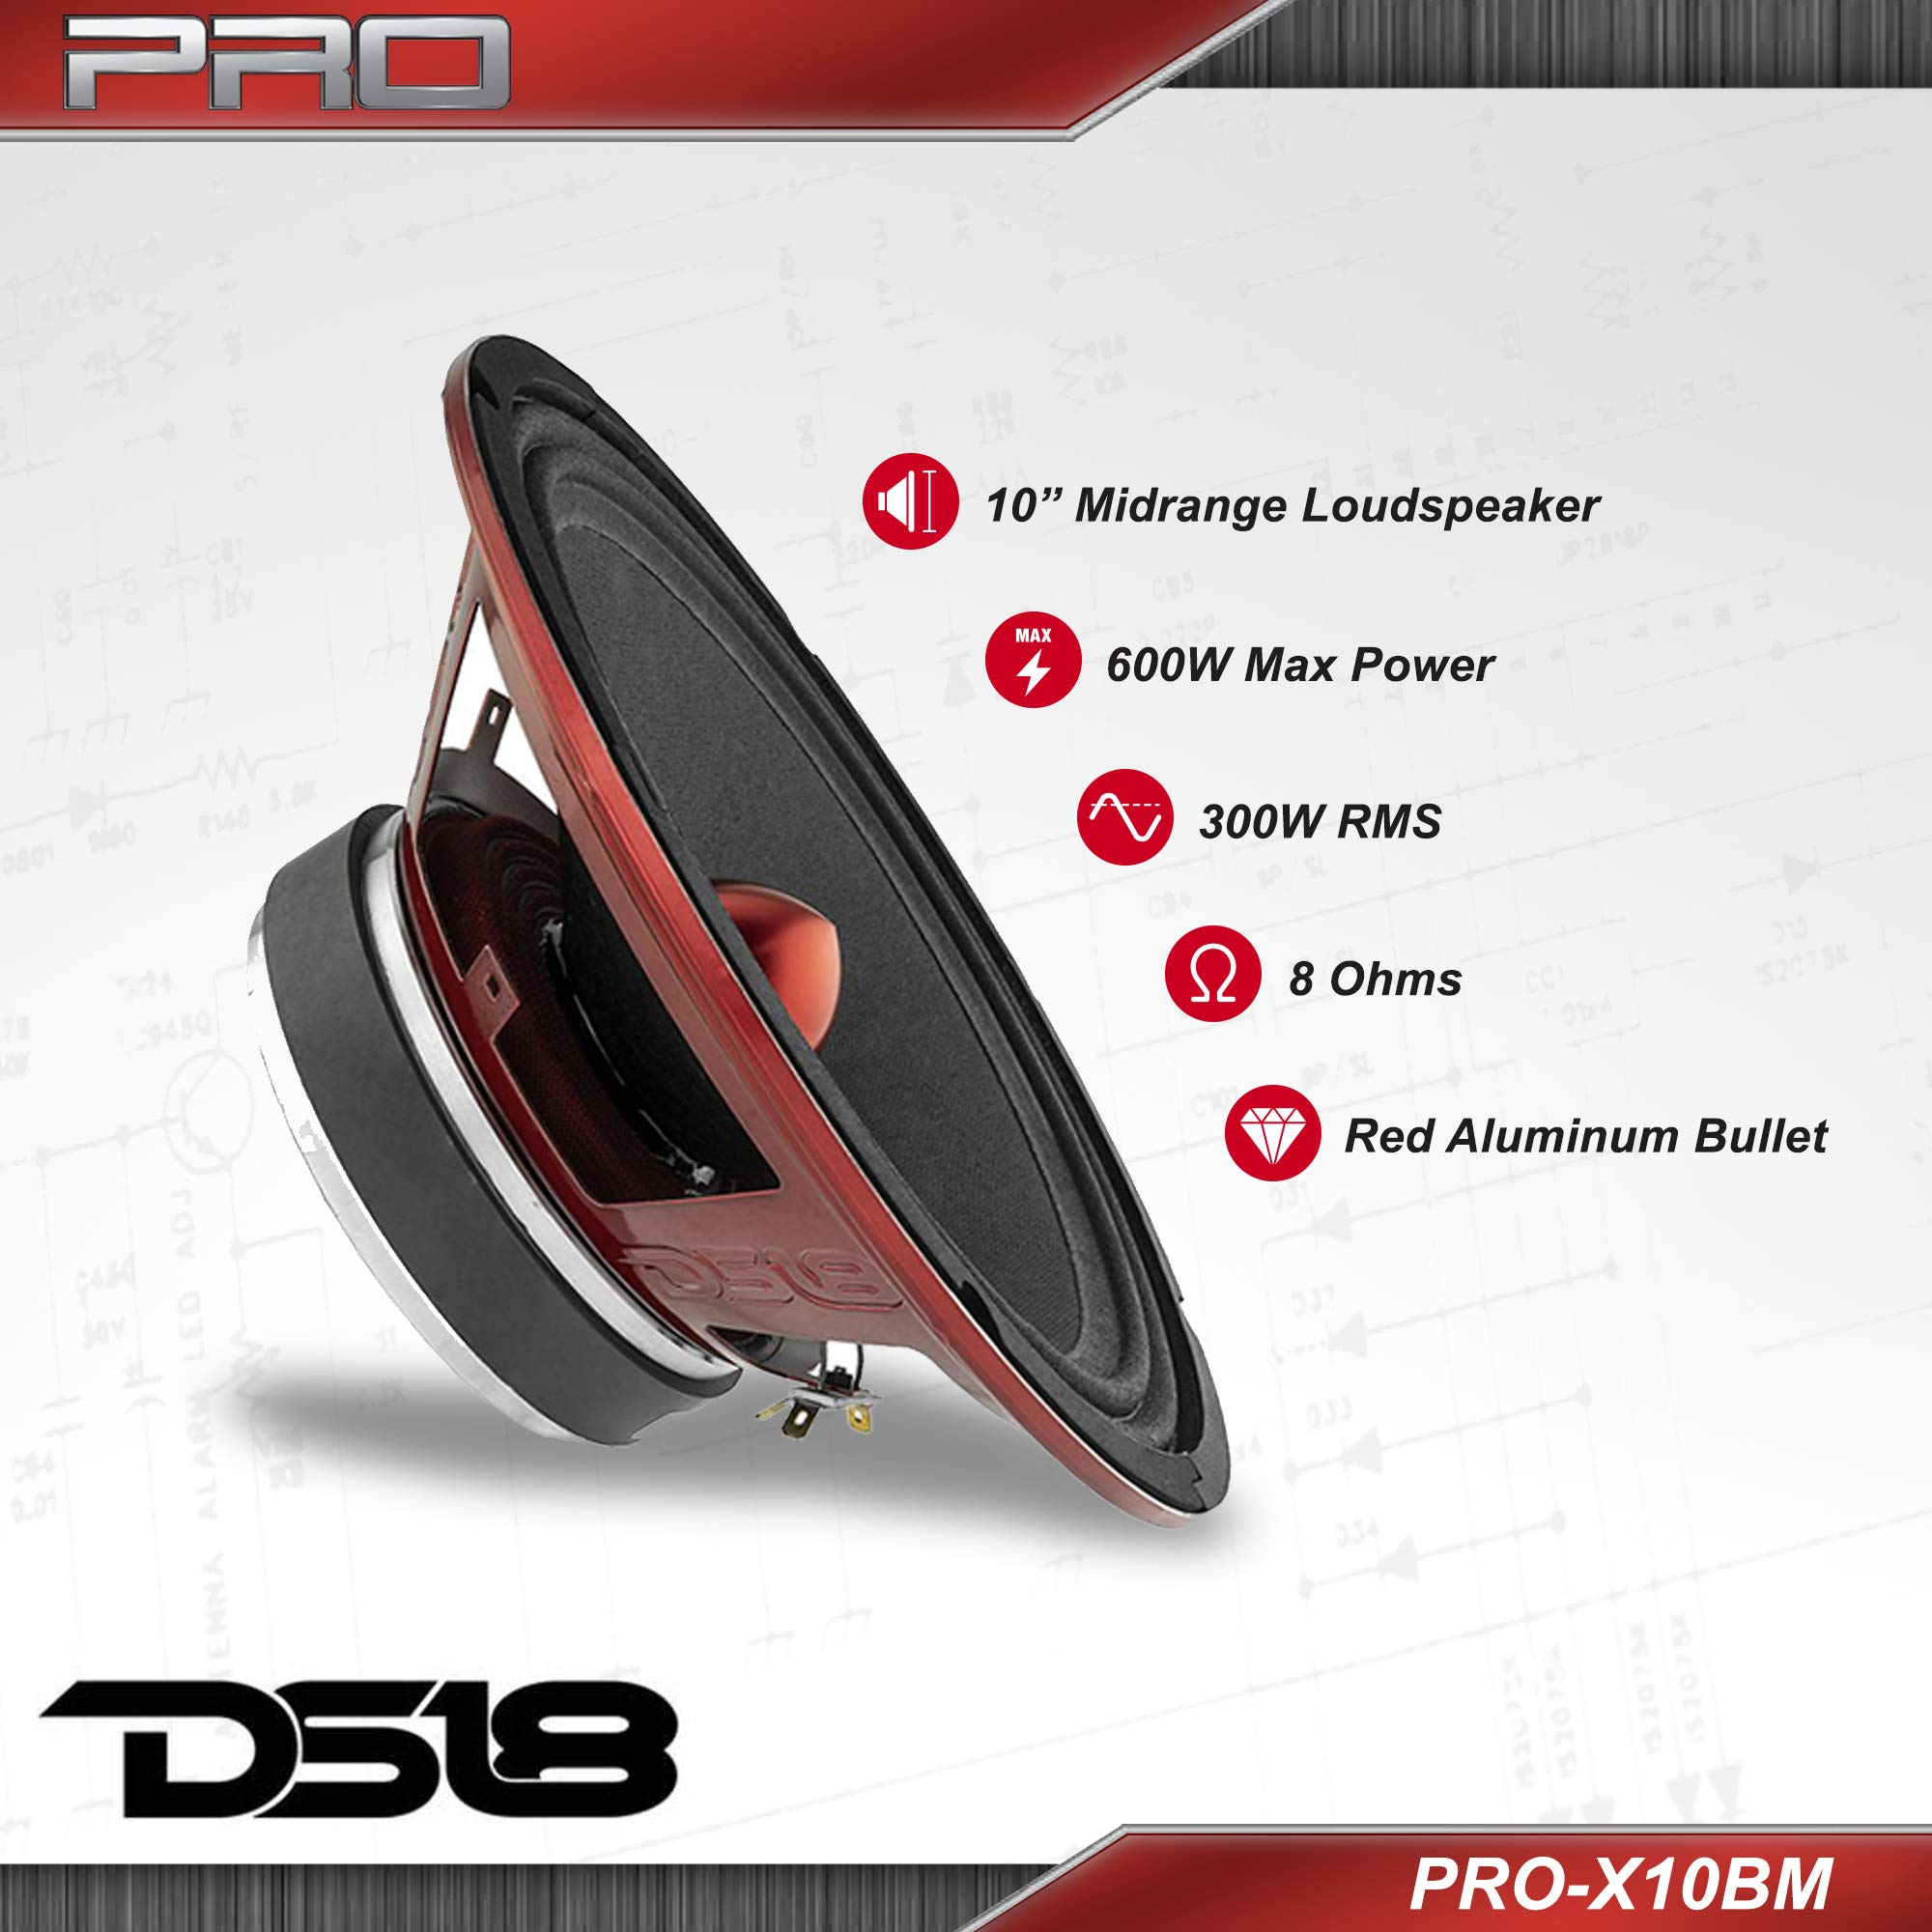 DS18 PRO-X10BM Loudspeaker - 10'', Midrange, Red Aluminum Bullet, 600W Max, 300W RMS, 8 Ohms - Premium Quality Audio Door Speakers for Car or Truck Stereo Sound System (1 Speaker) by DS18 (Image #3)